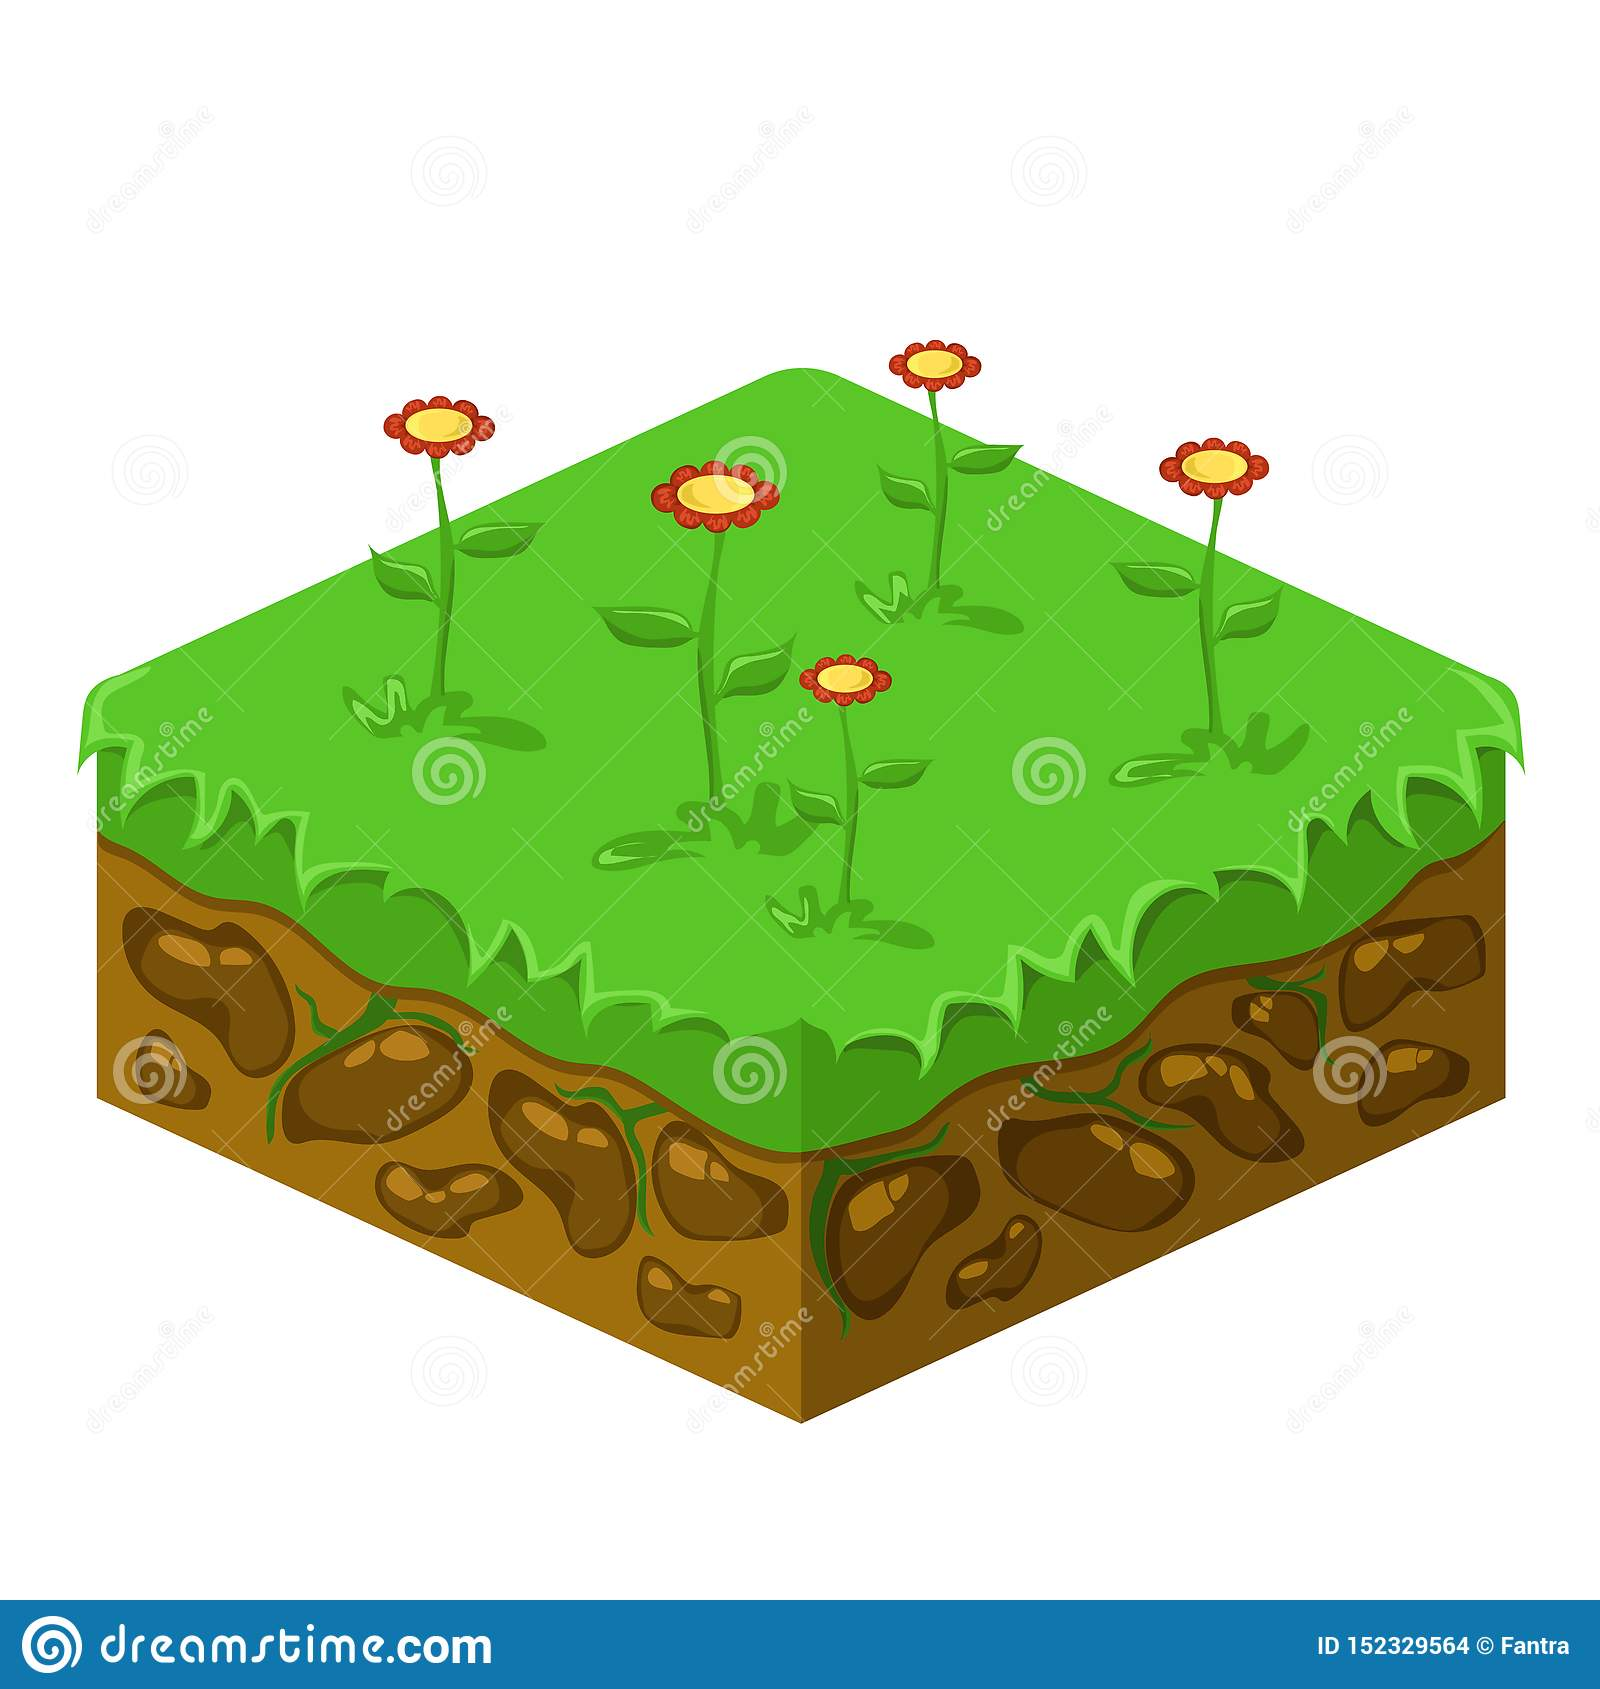 Soil Layers Vector Isometric Image Stock Vector ...